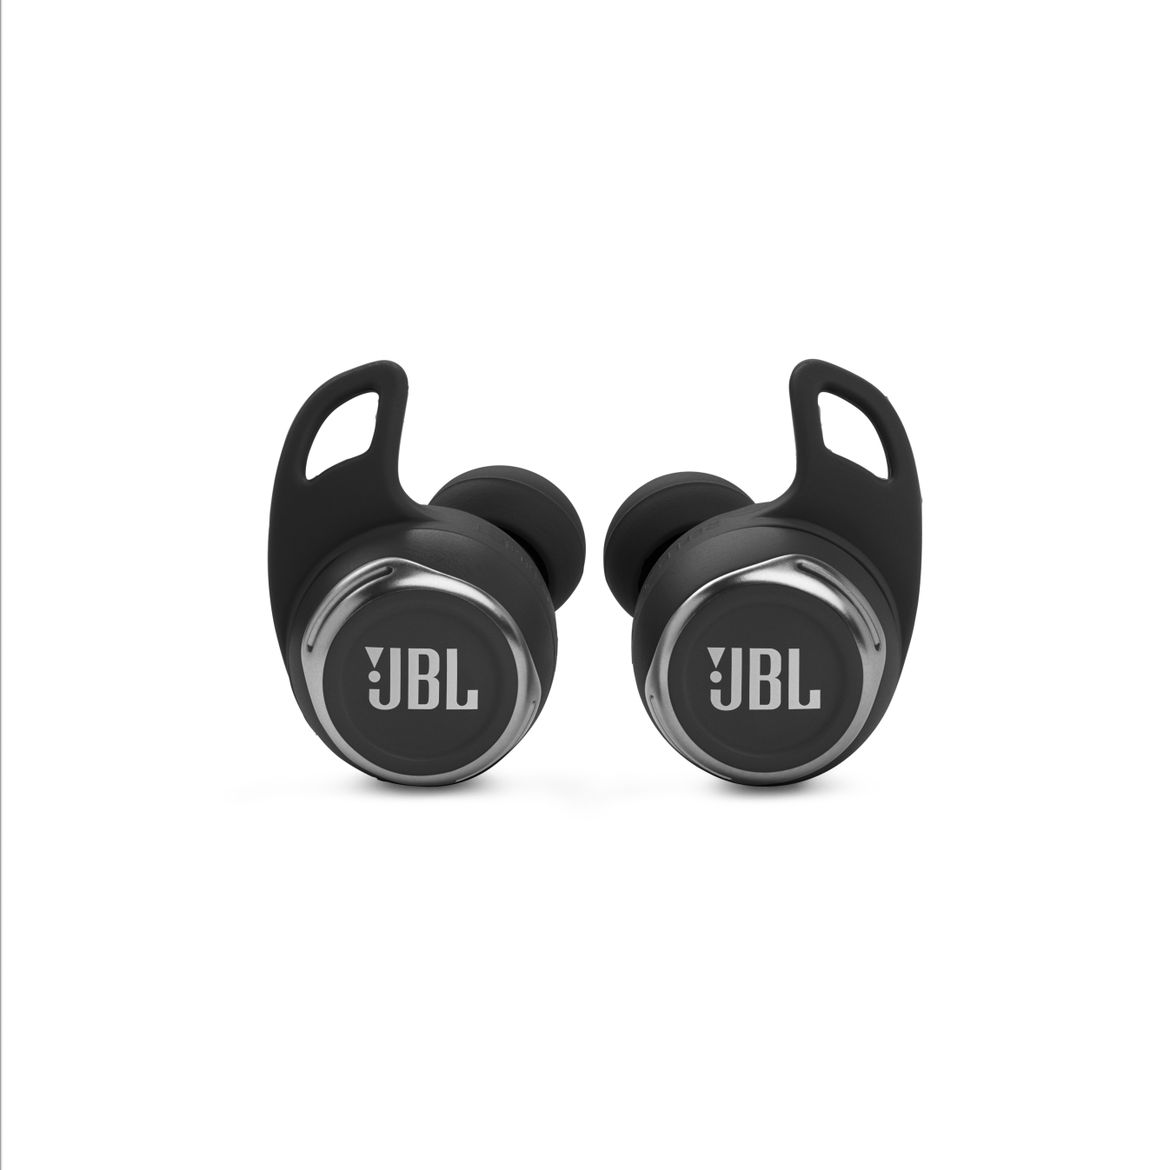 1. JBL_REFLECT_FLOW_PRO_Product Image_Earbuds Front_Black